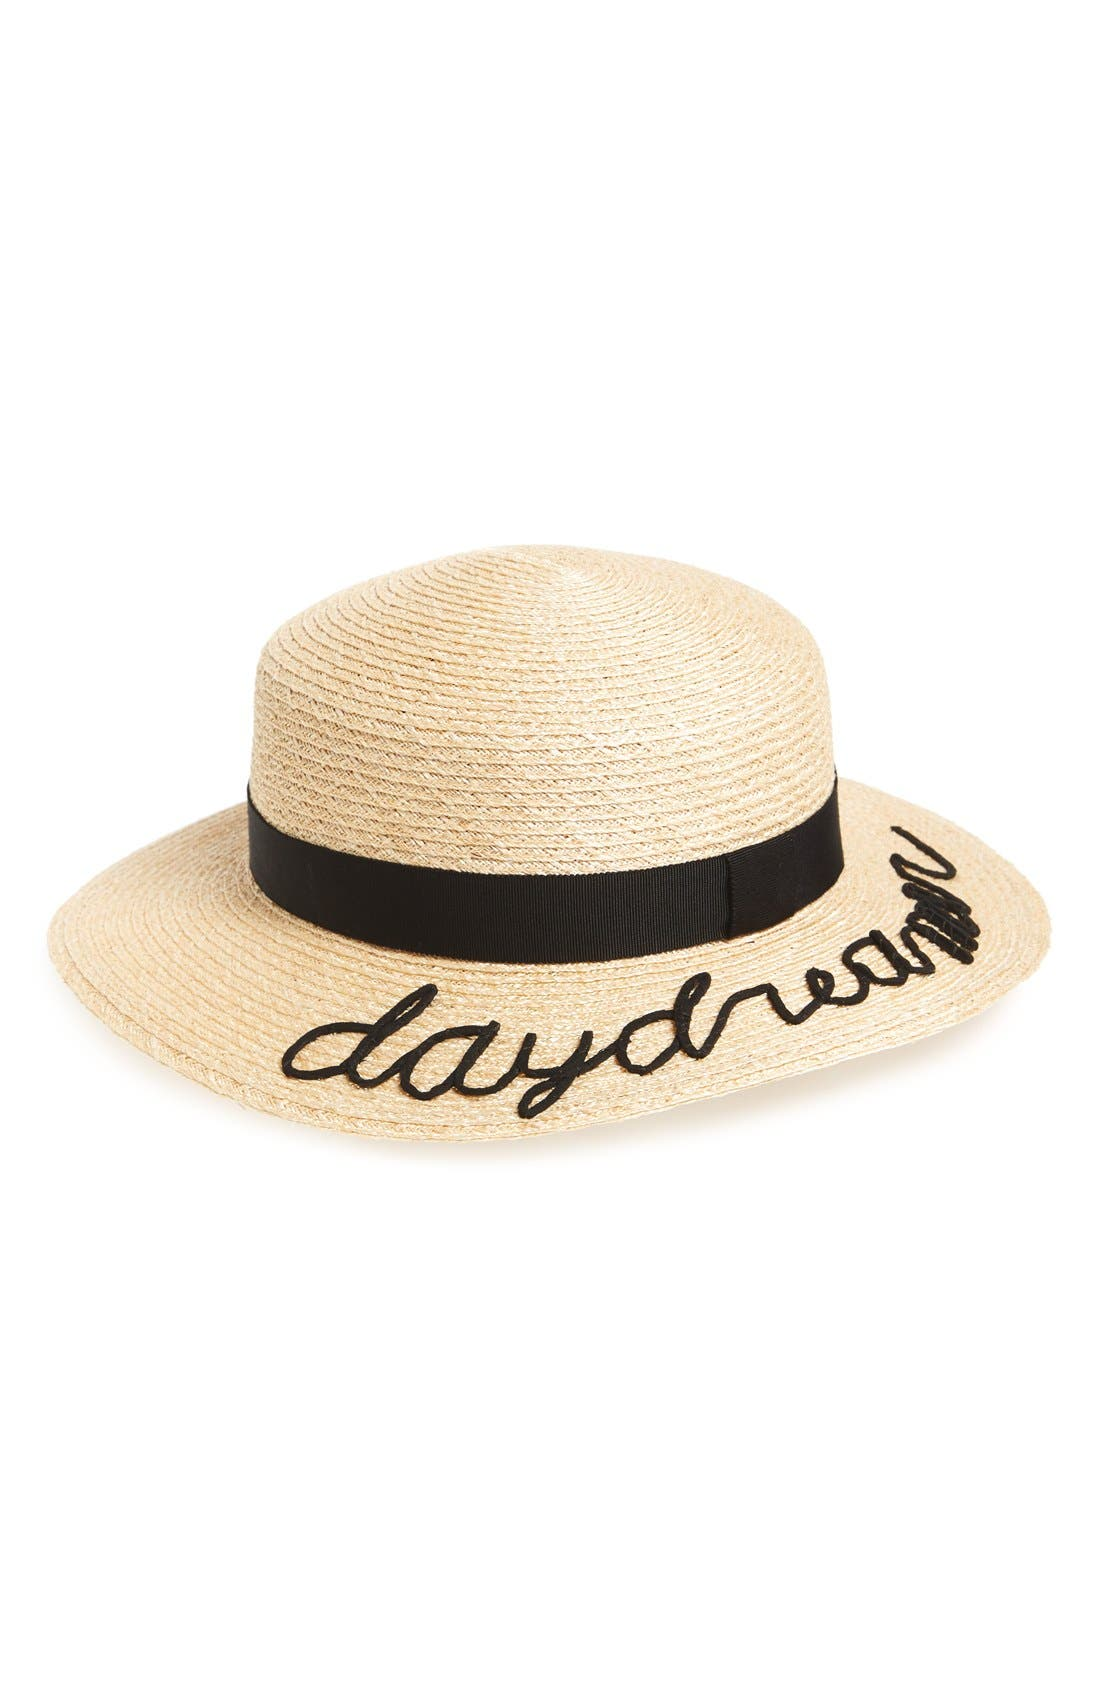 'Daydreamer' Straw Boater Hat,                             Main thumbnail 1, color,                             251